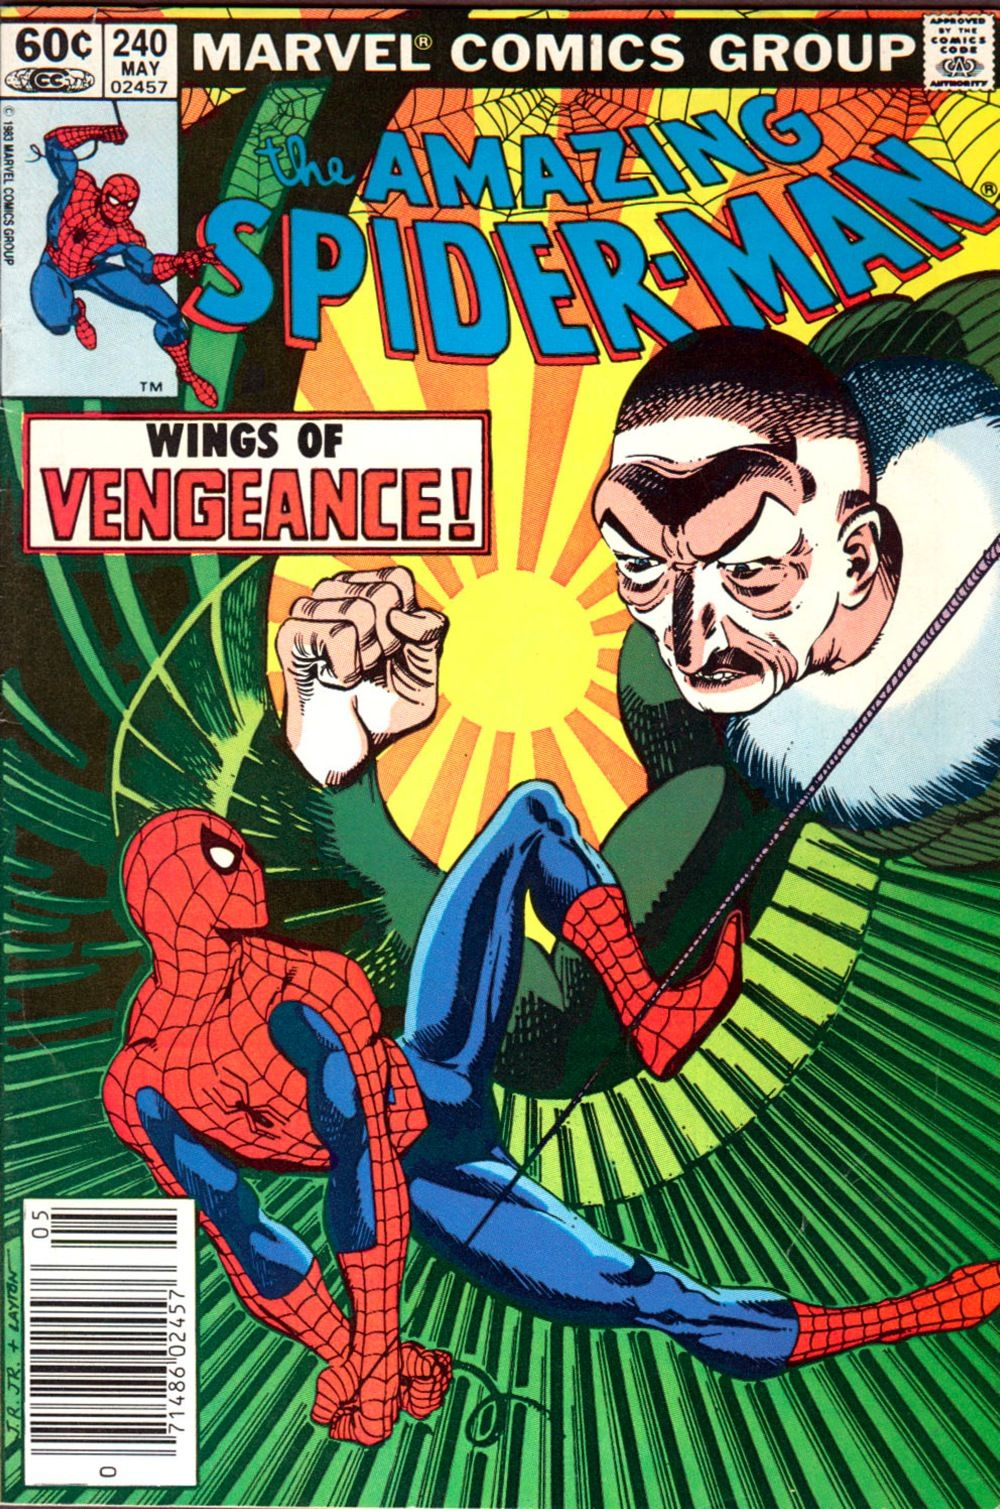 Another Stern Romita highlight: making the Vulture into an interesting, credible villain.